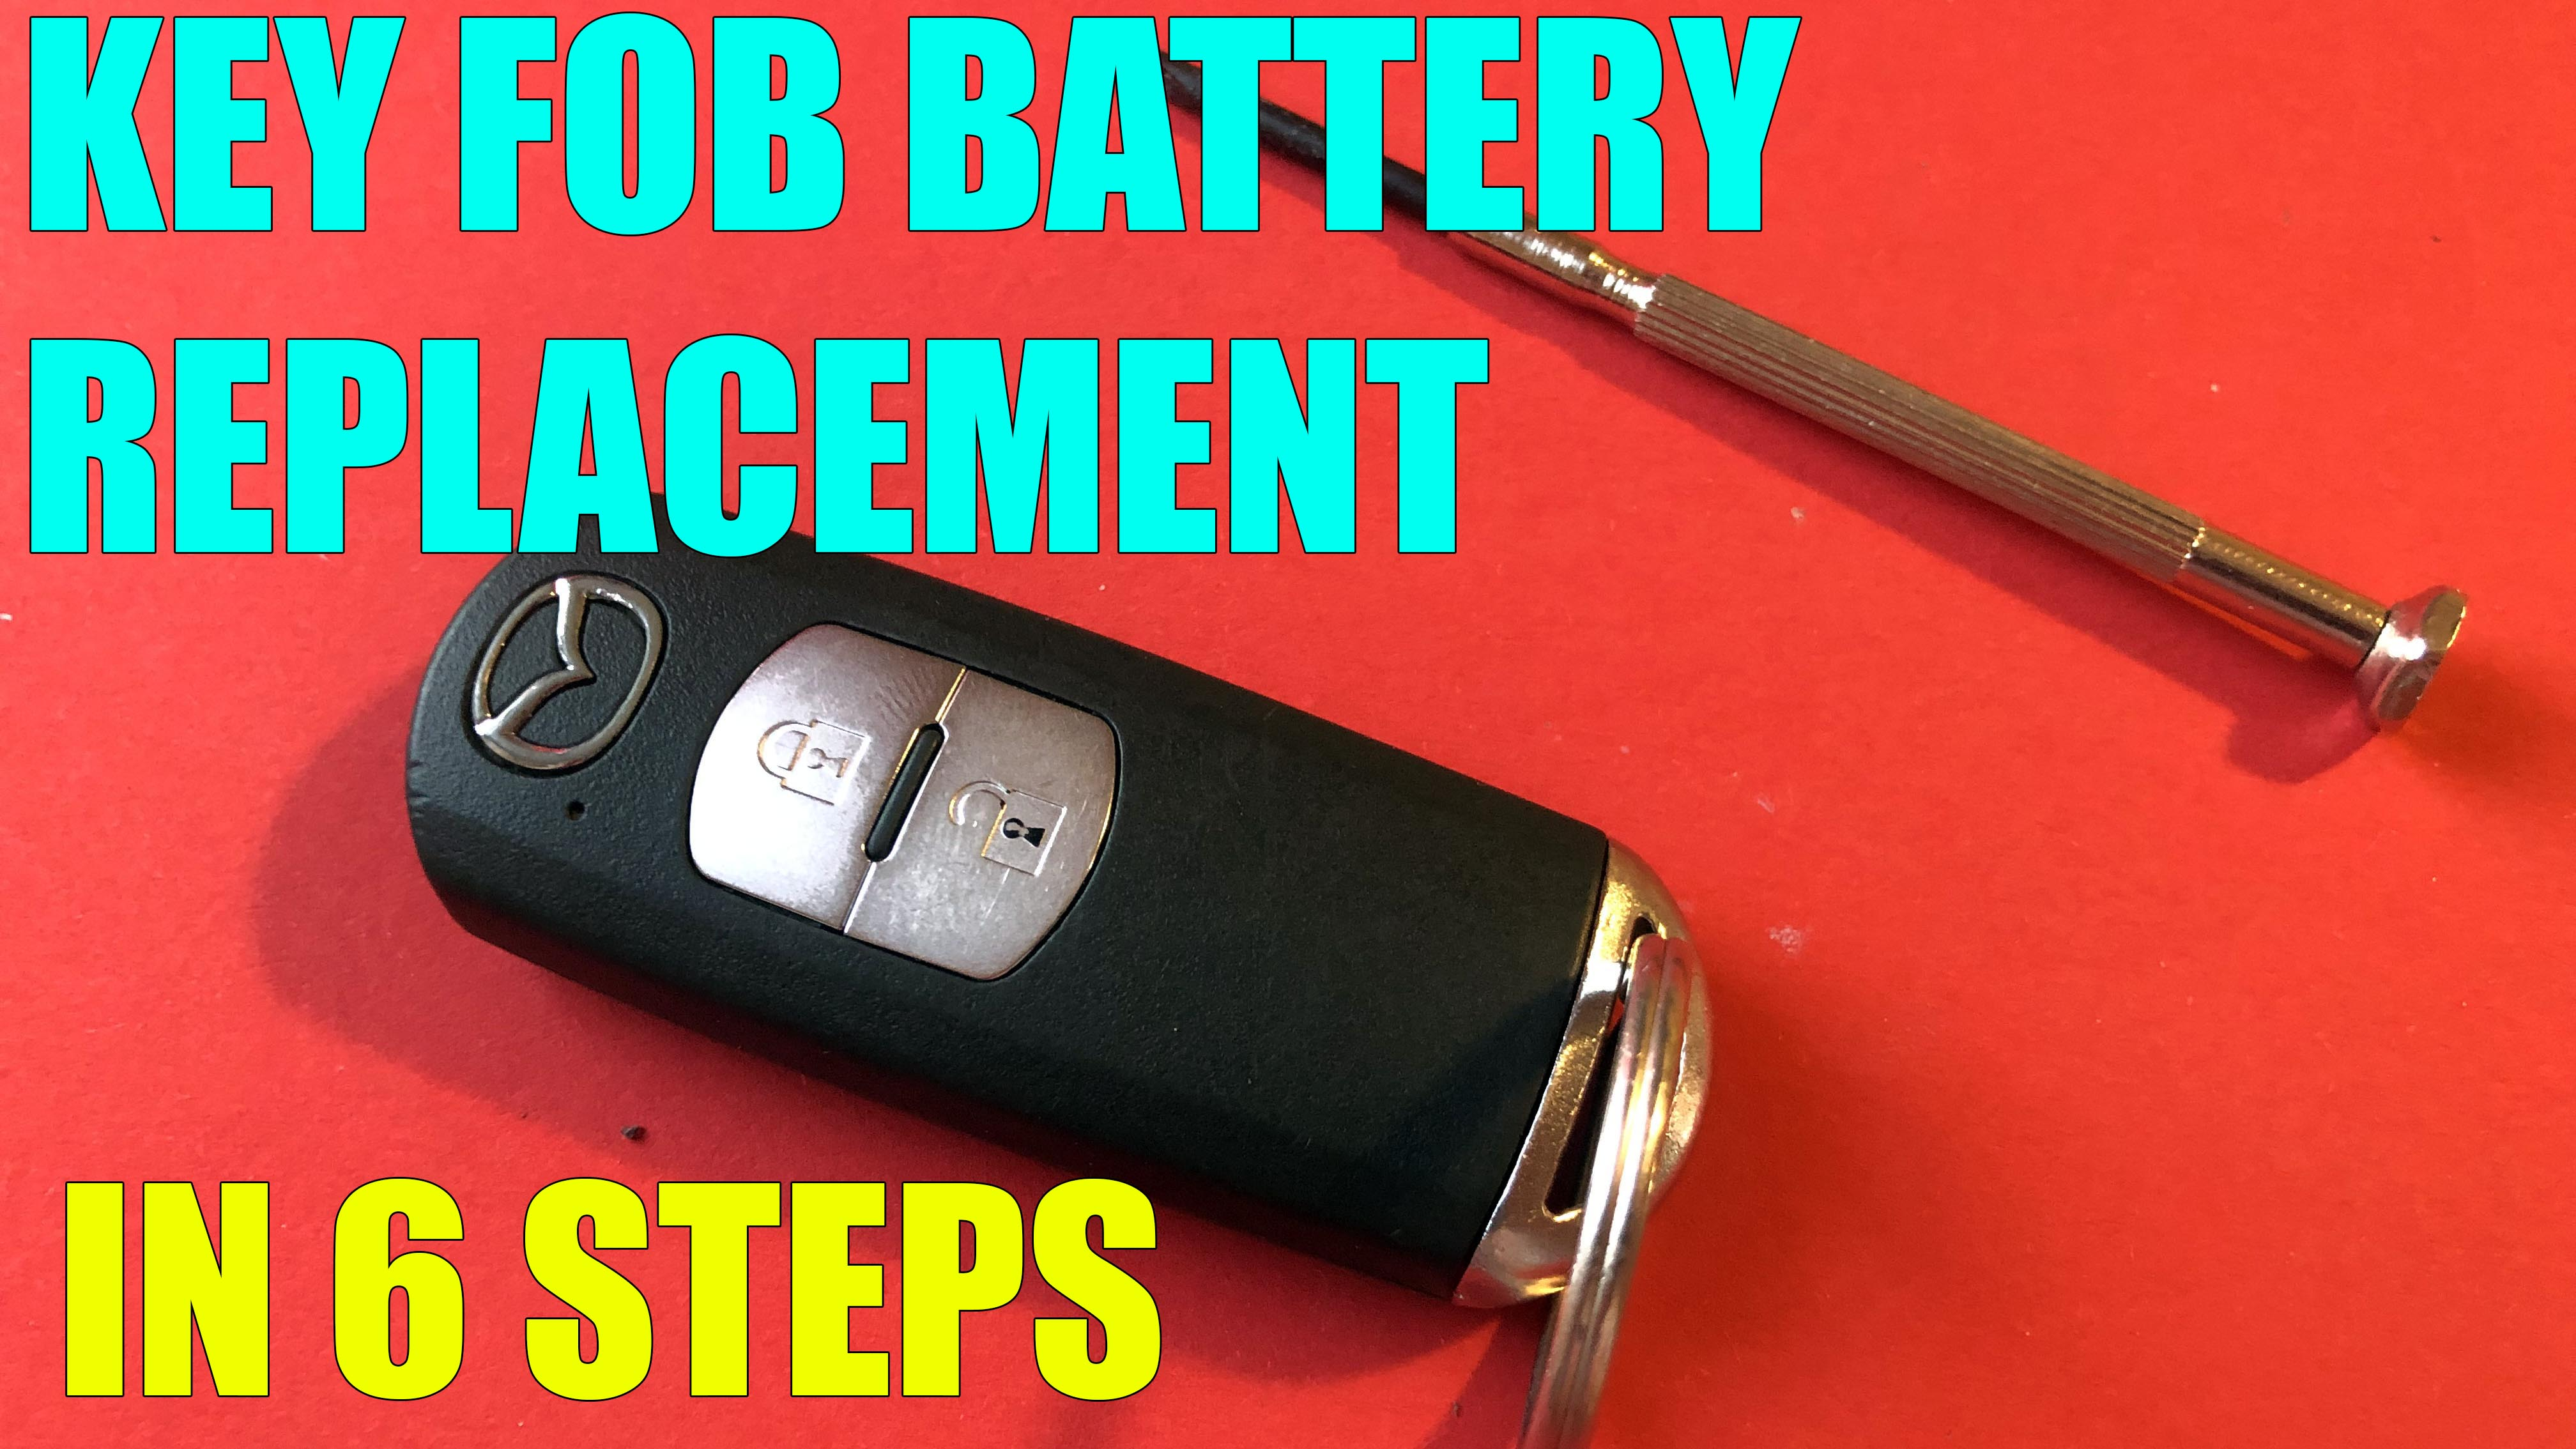 Mazda 3 Key Fob Battery >> How to replace the key fob battery Mazda 3, Mazda 6, CX-5 ...